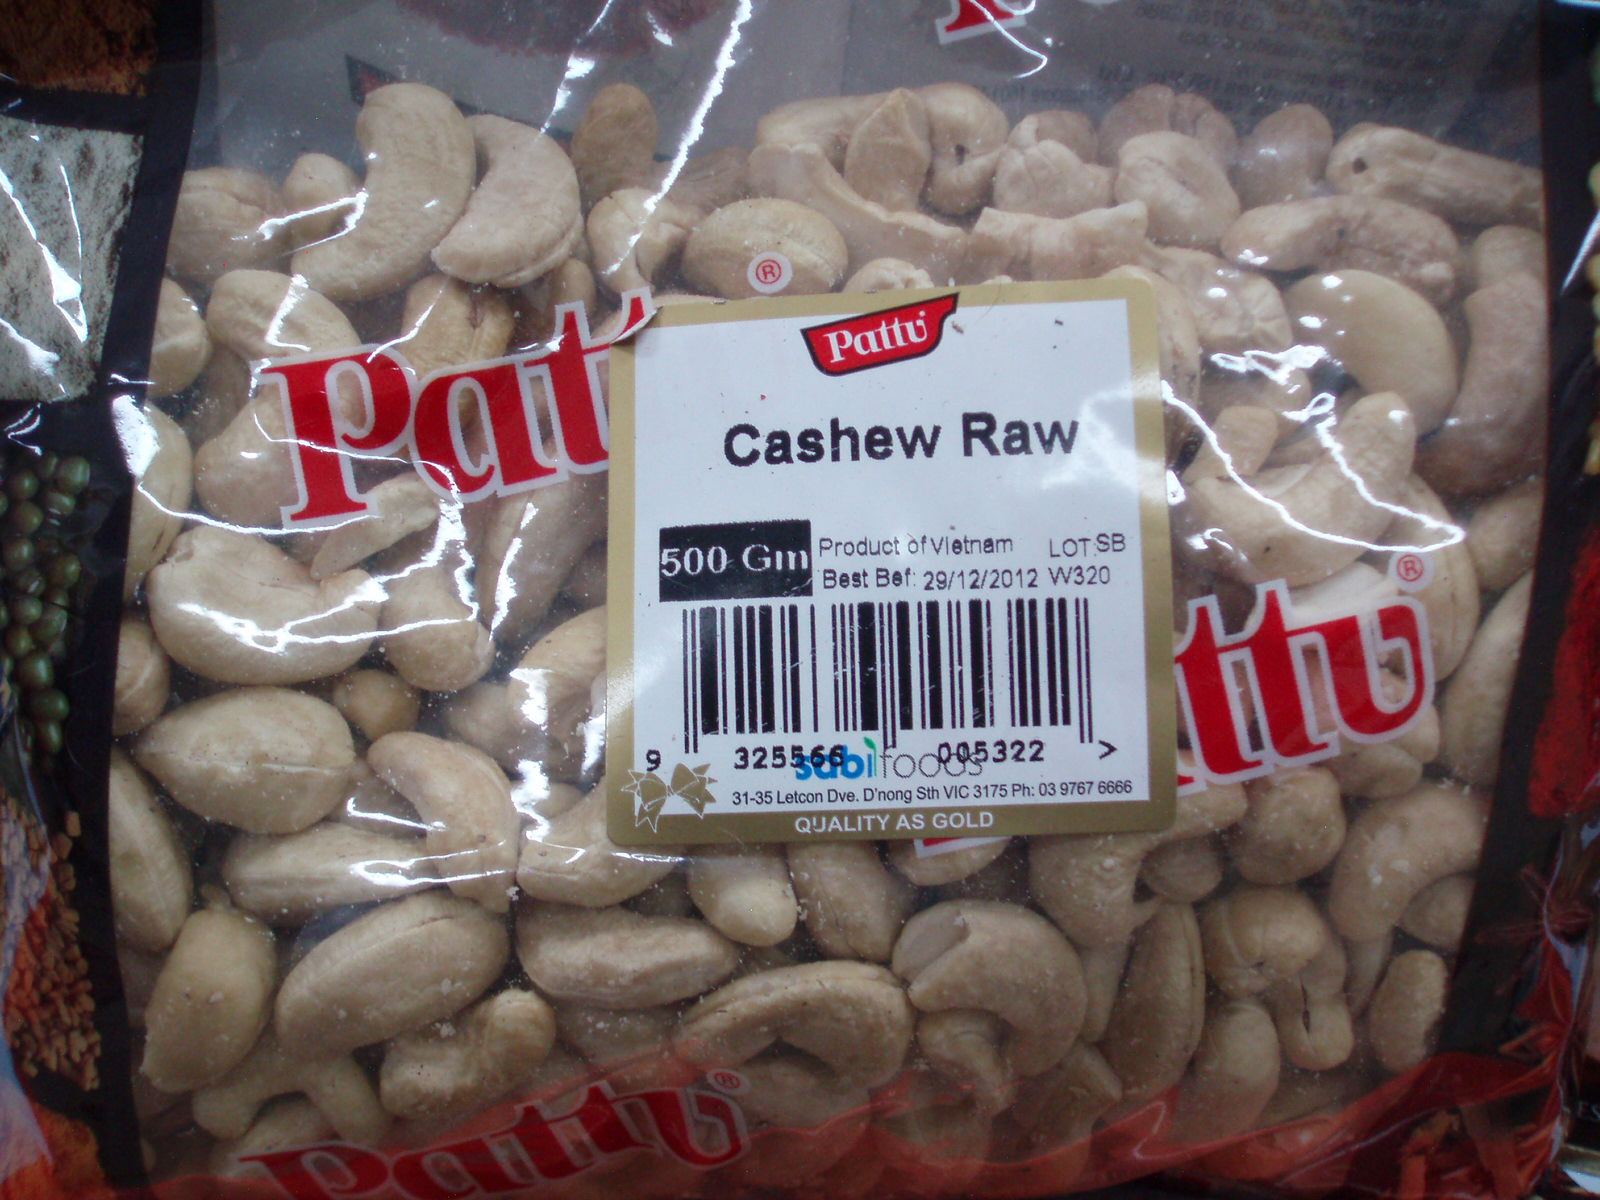 Cashew Pieces Large-Pattu-500 gm